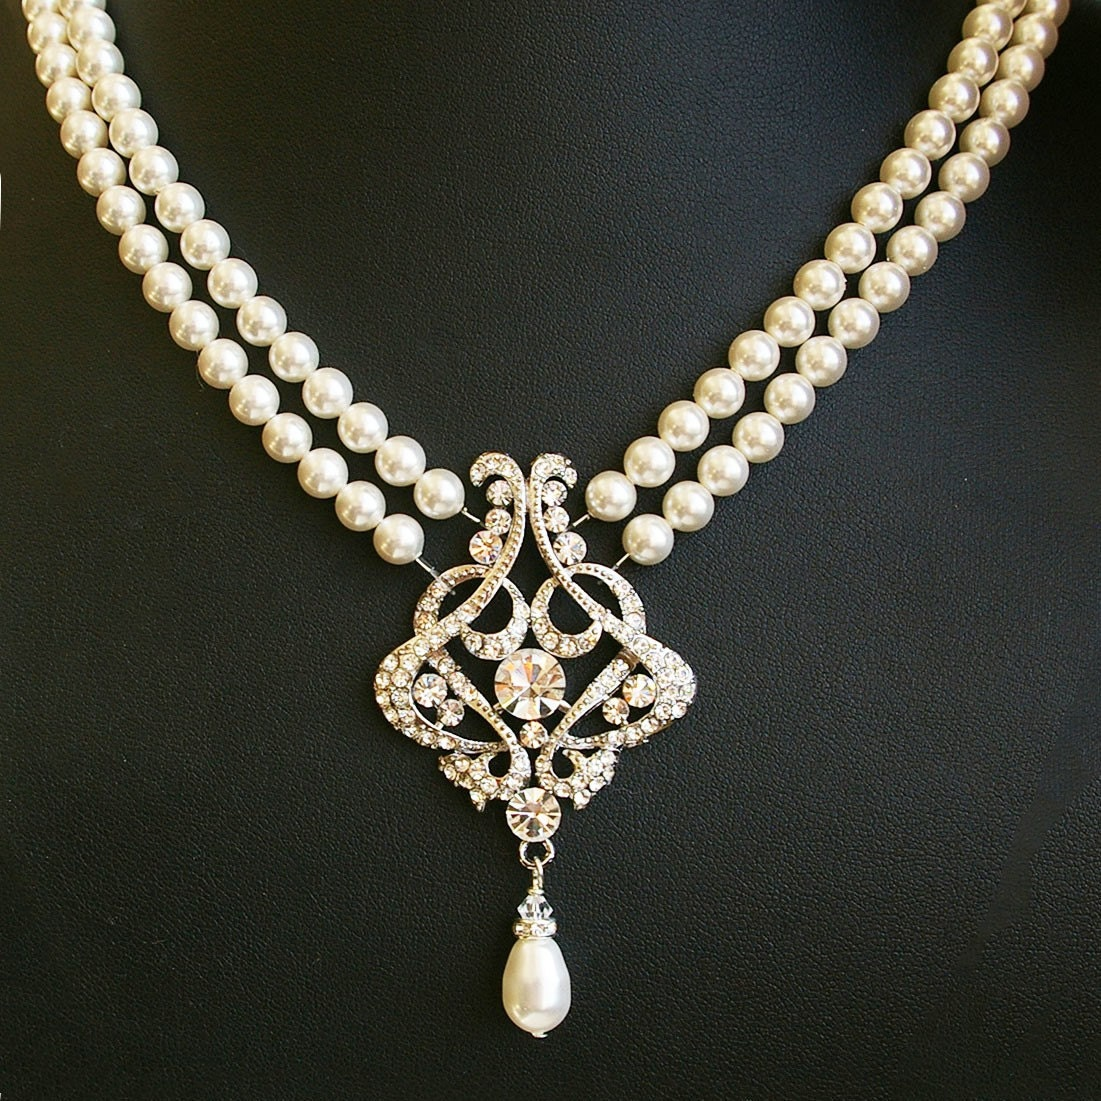 Vintage Bridal Necklace 50